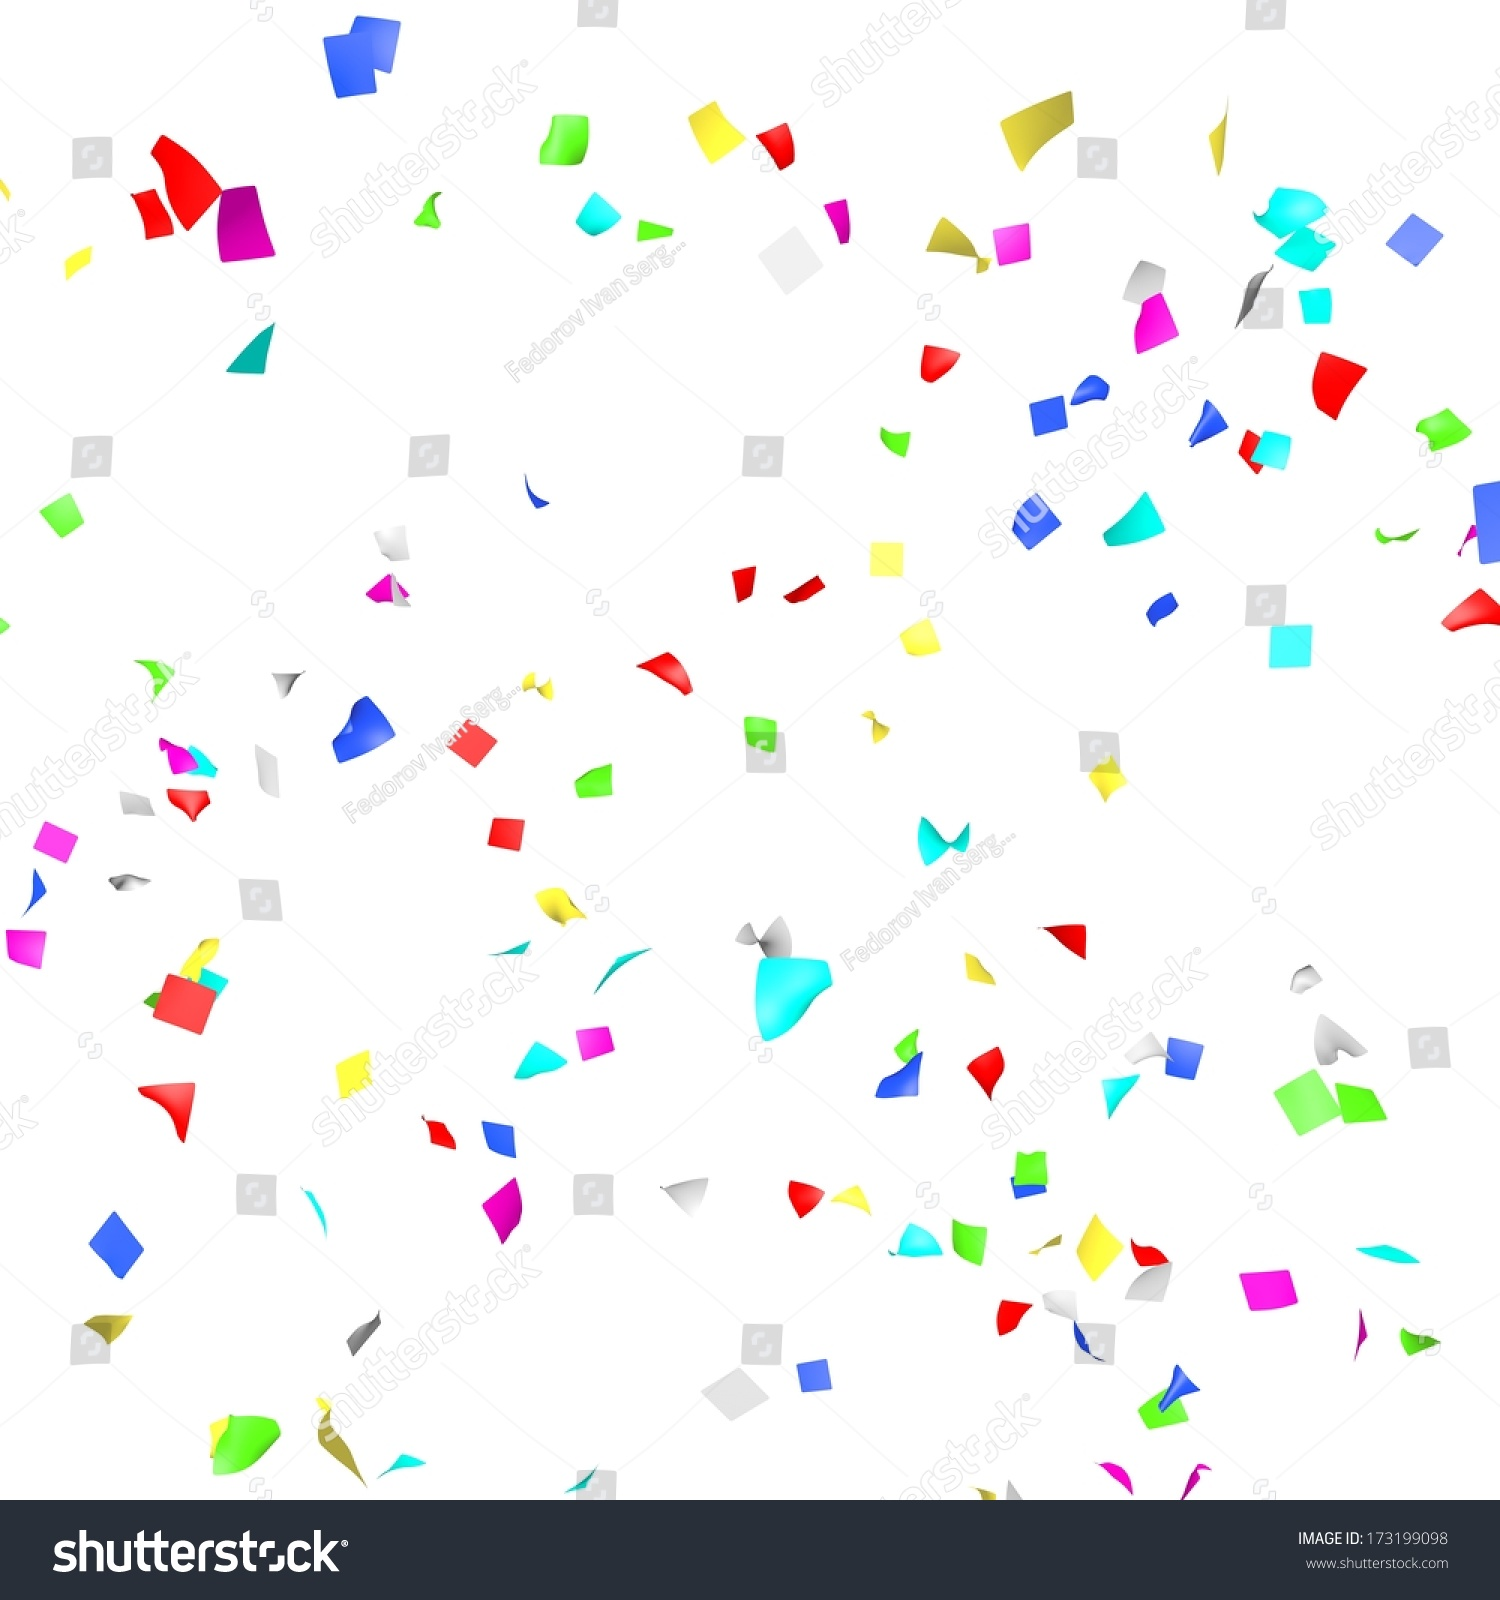 Colored paper in flight isolated on a… Stock Photo 173199098.